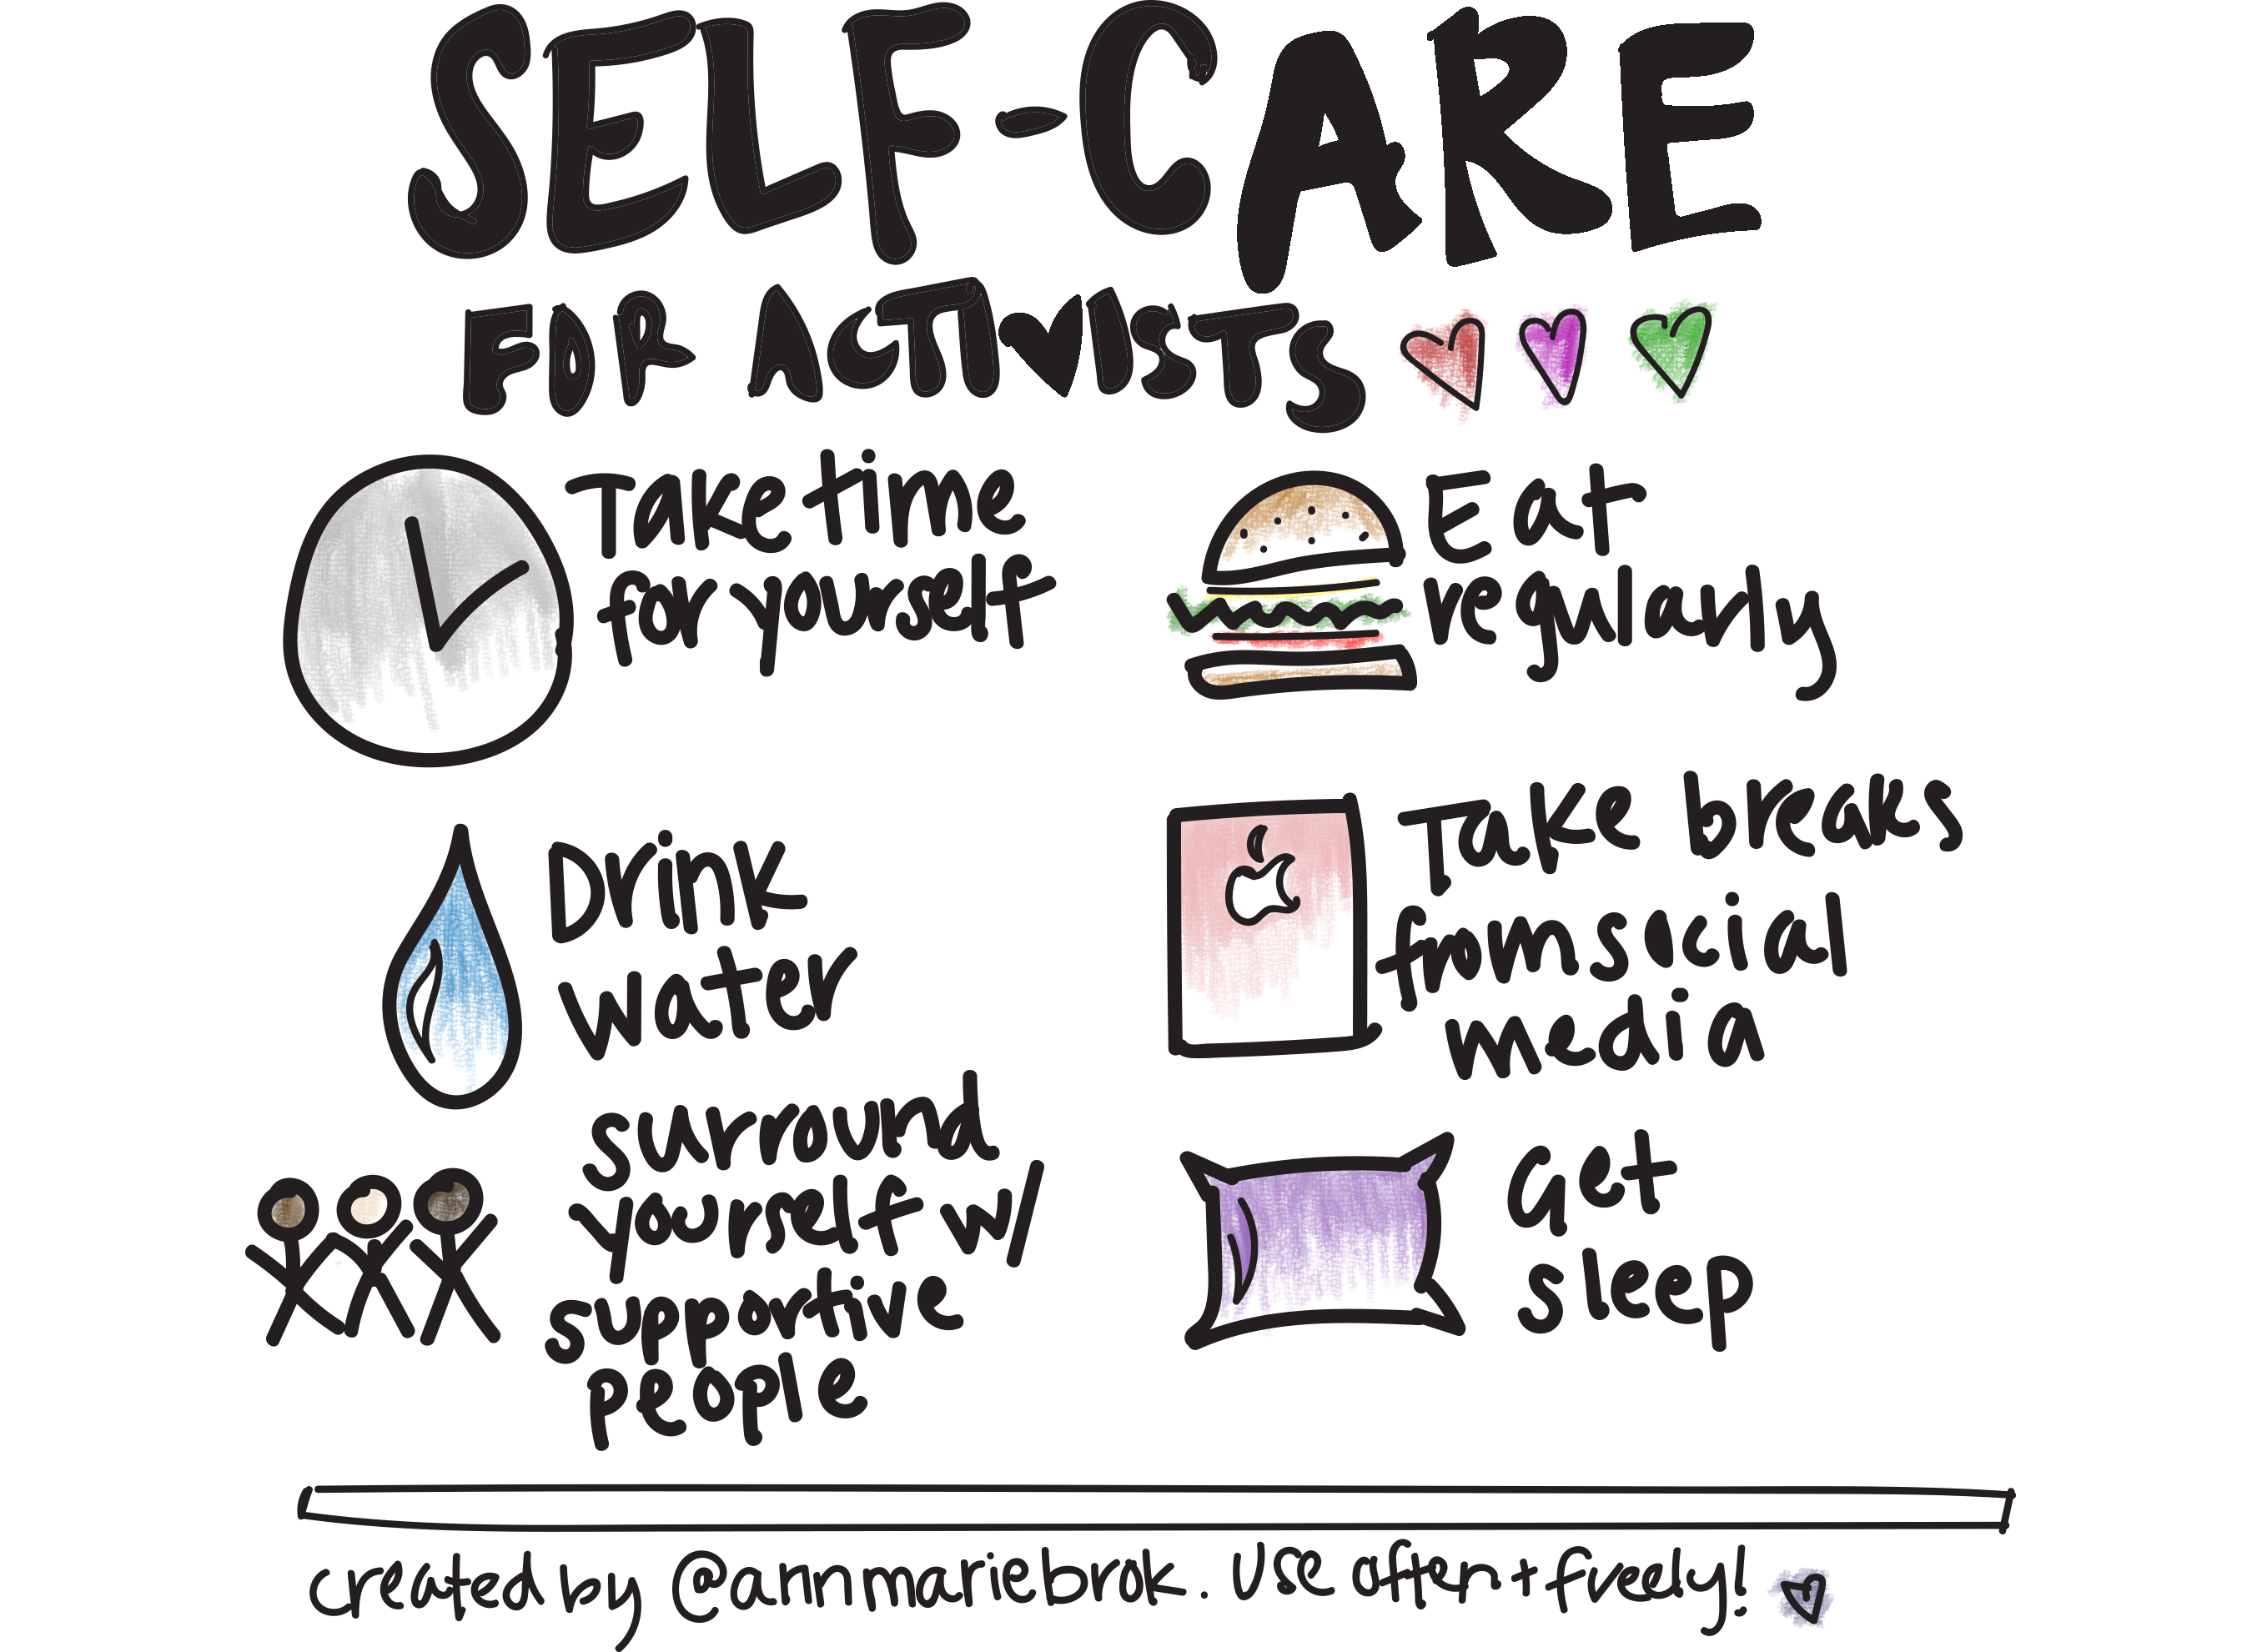 Your Self Care Is As Important As Your Activism Self Care Self How To Get Sleep